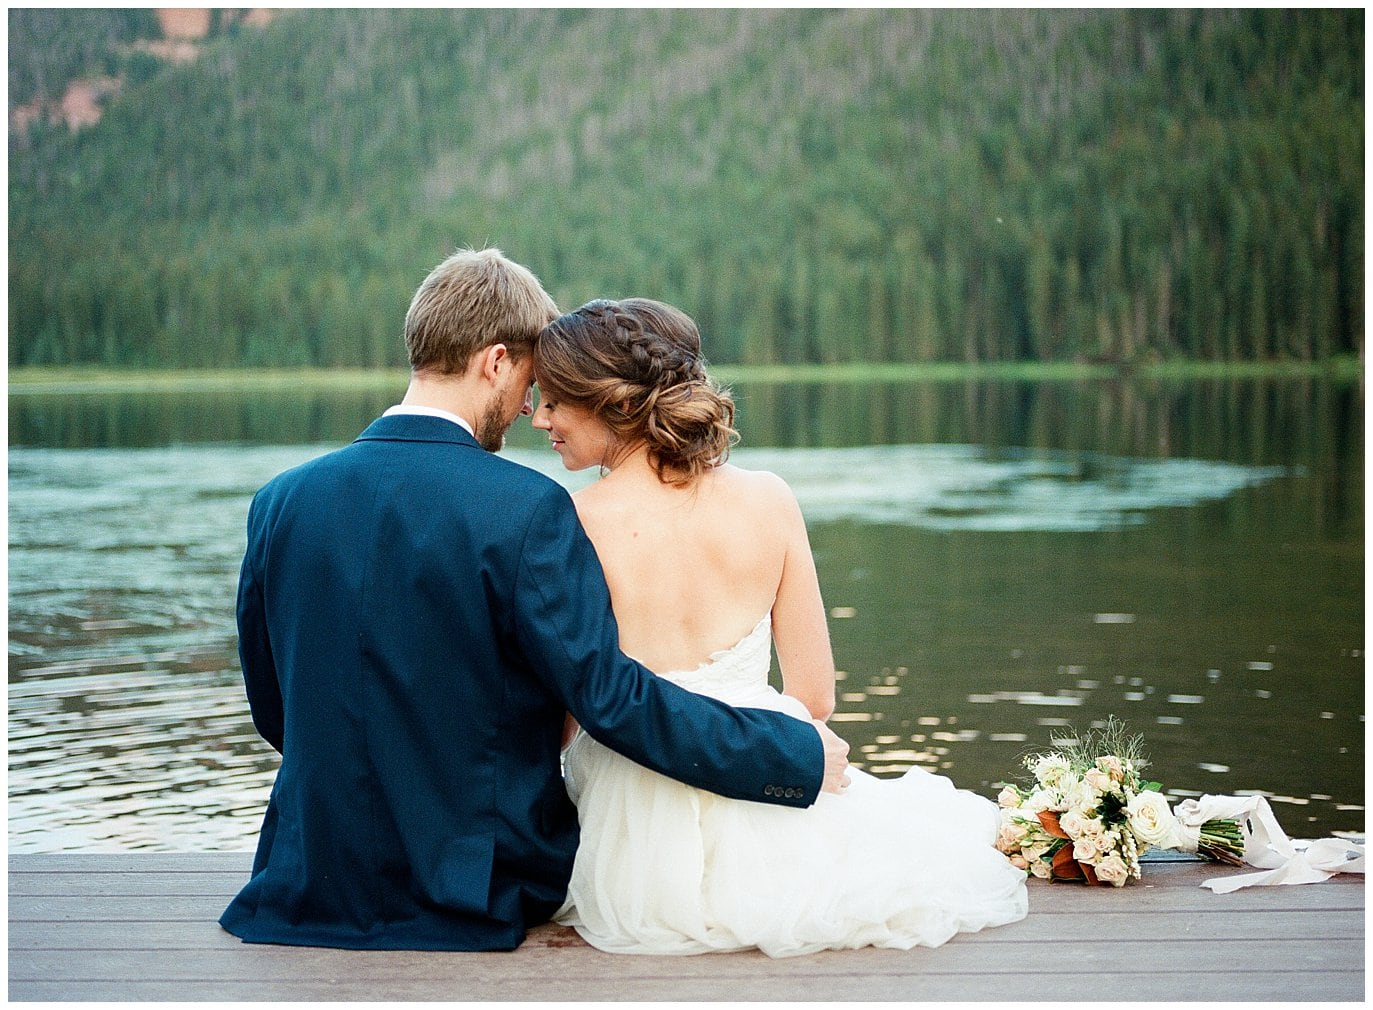 Couple by the lake at Piney River Ranch wedding by Estes Park Wedding Photographer Jennie Crate, Photographer